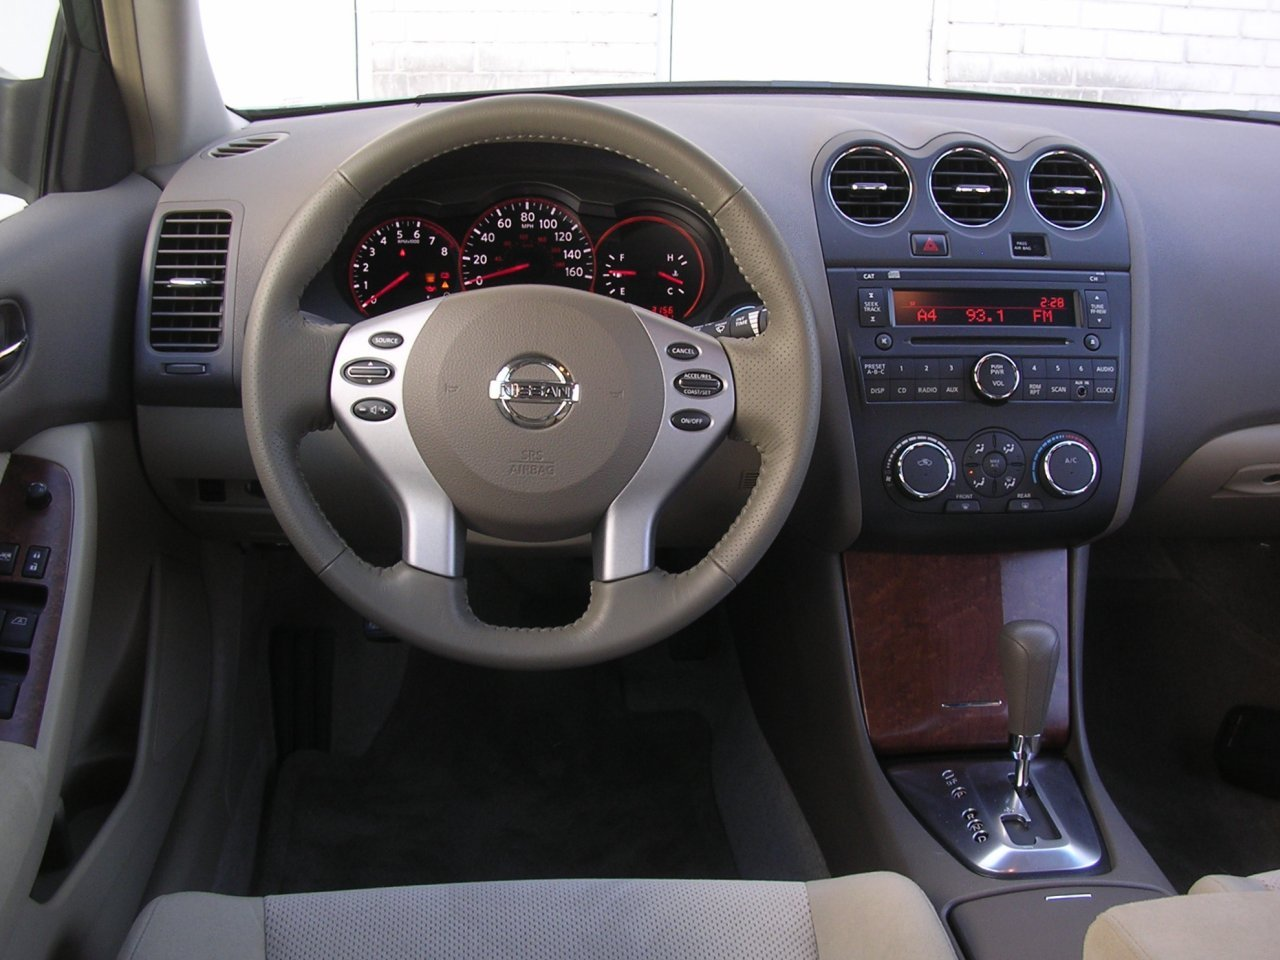 Download Nissan Altima 2007 6 Images